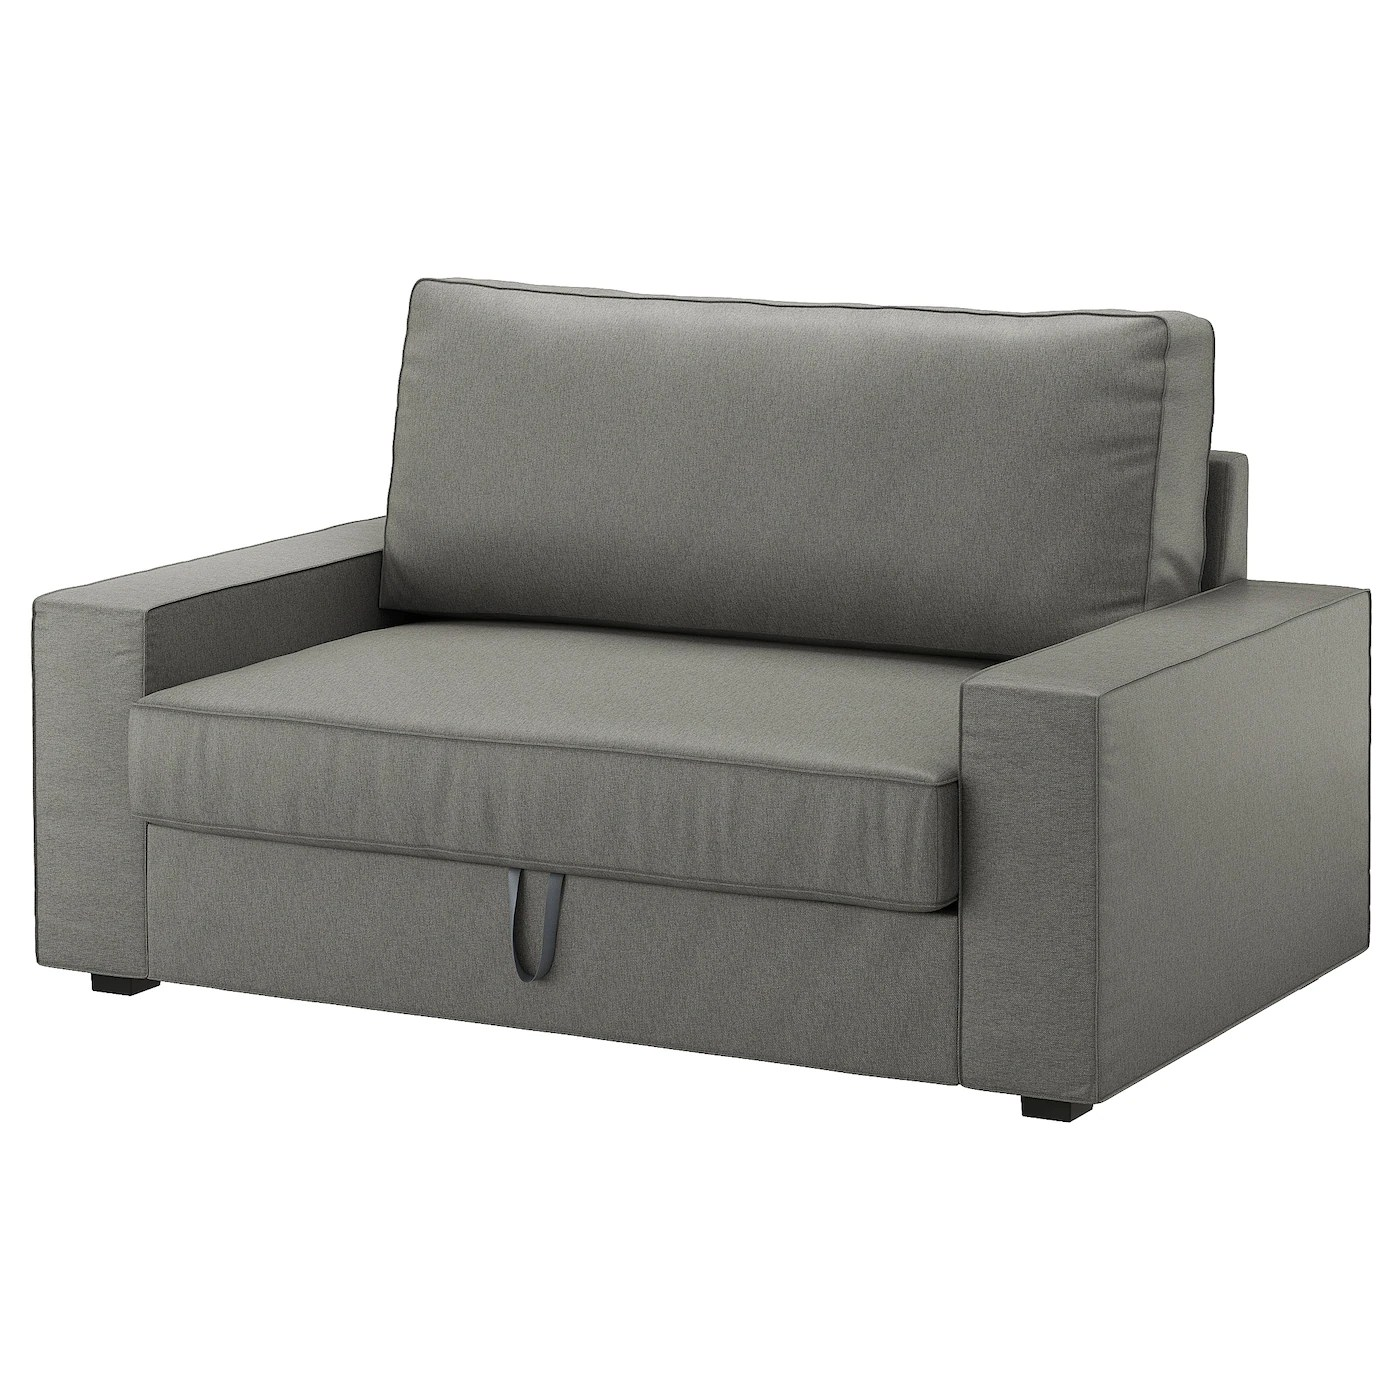 Ikea Vilasund 2 Two Seat Sofa Bed Cover Only New Discontinue Hillared Anthracite Sointechile Cl